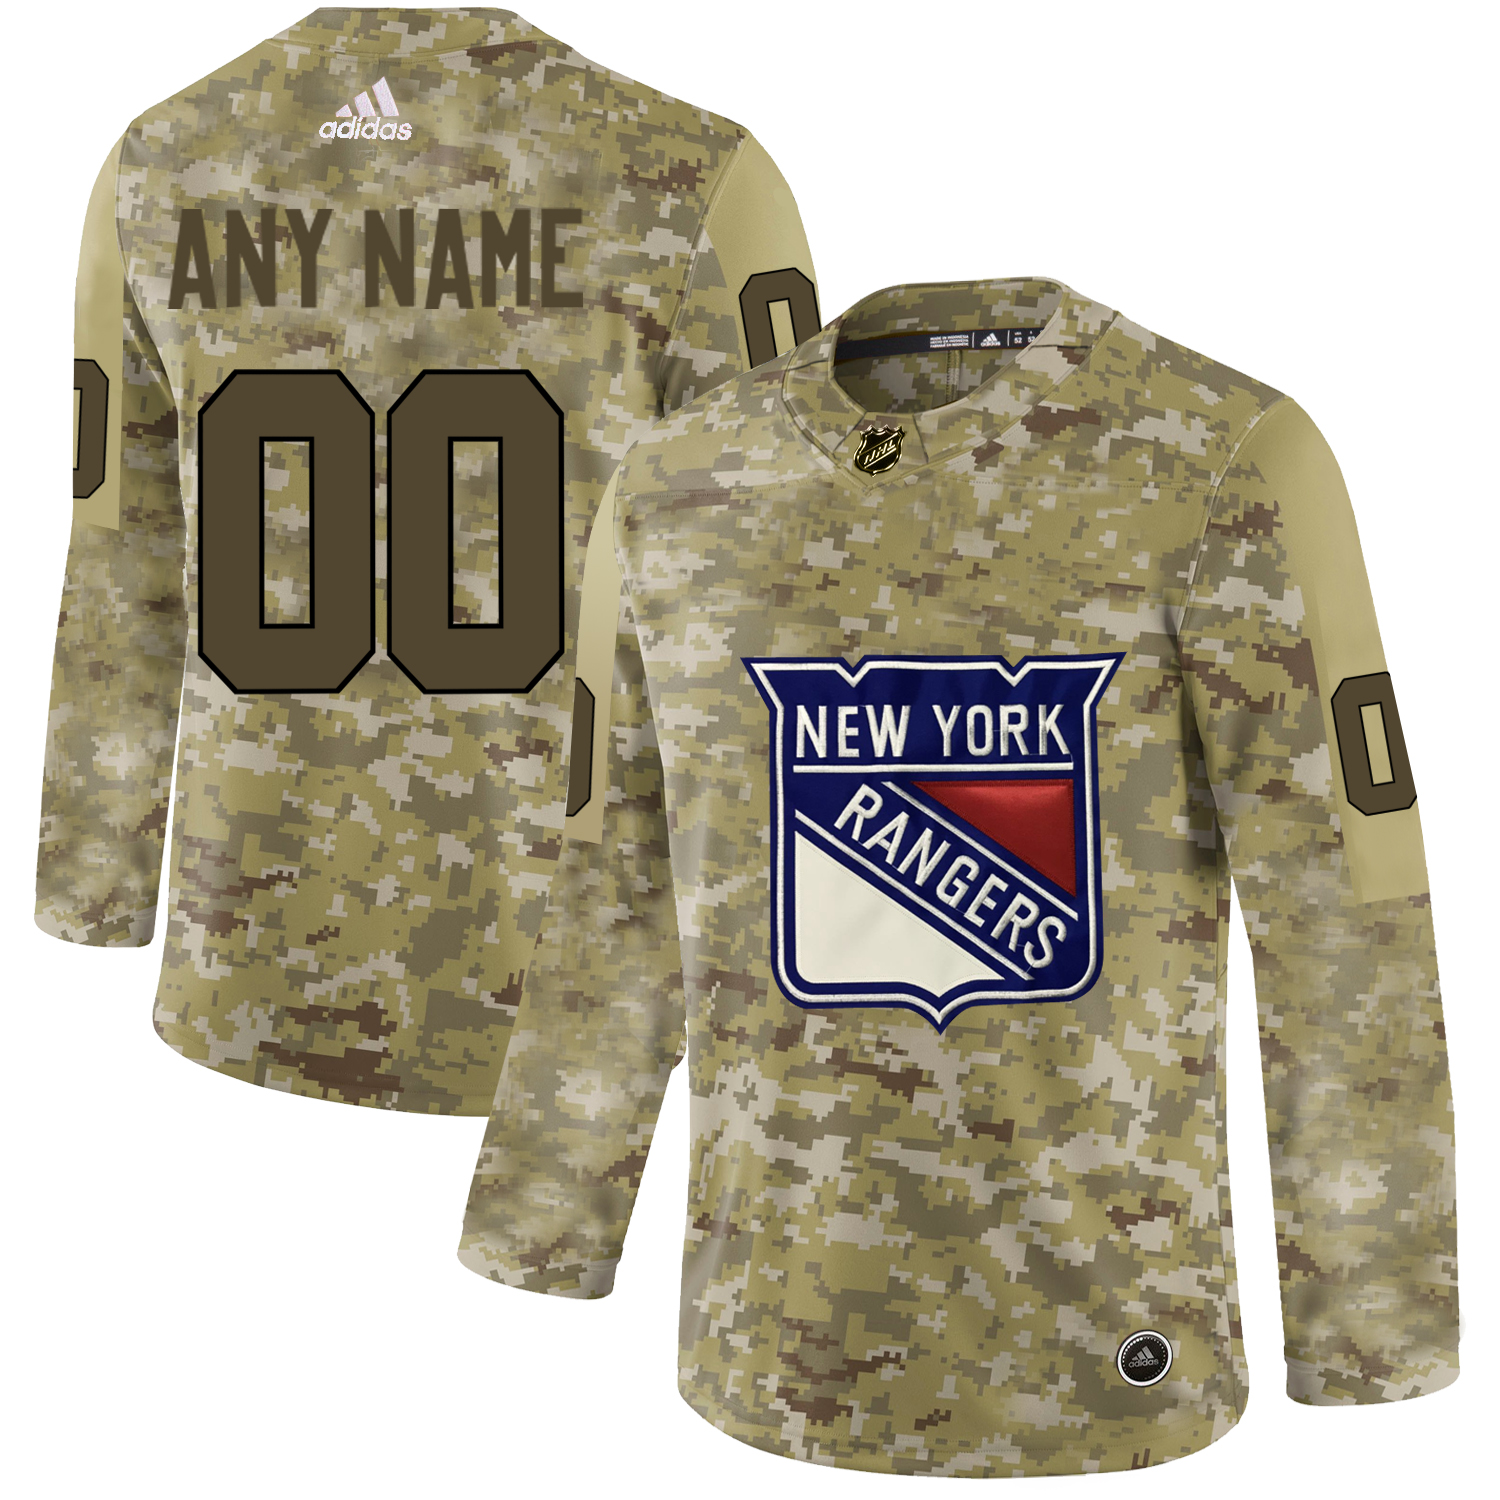 New York Rangers Camo Men's Customized Adidas Jersey